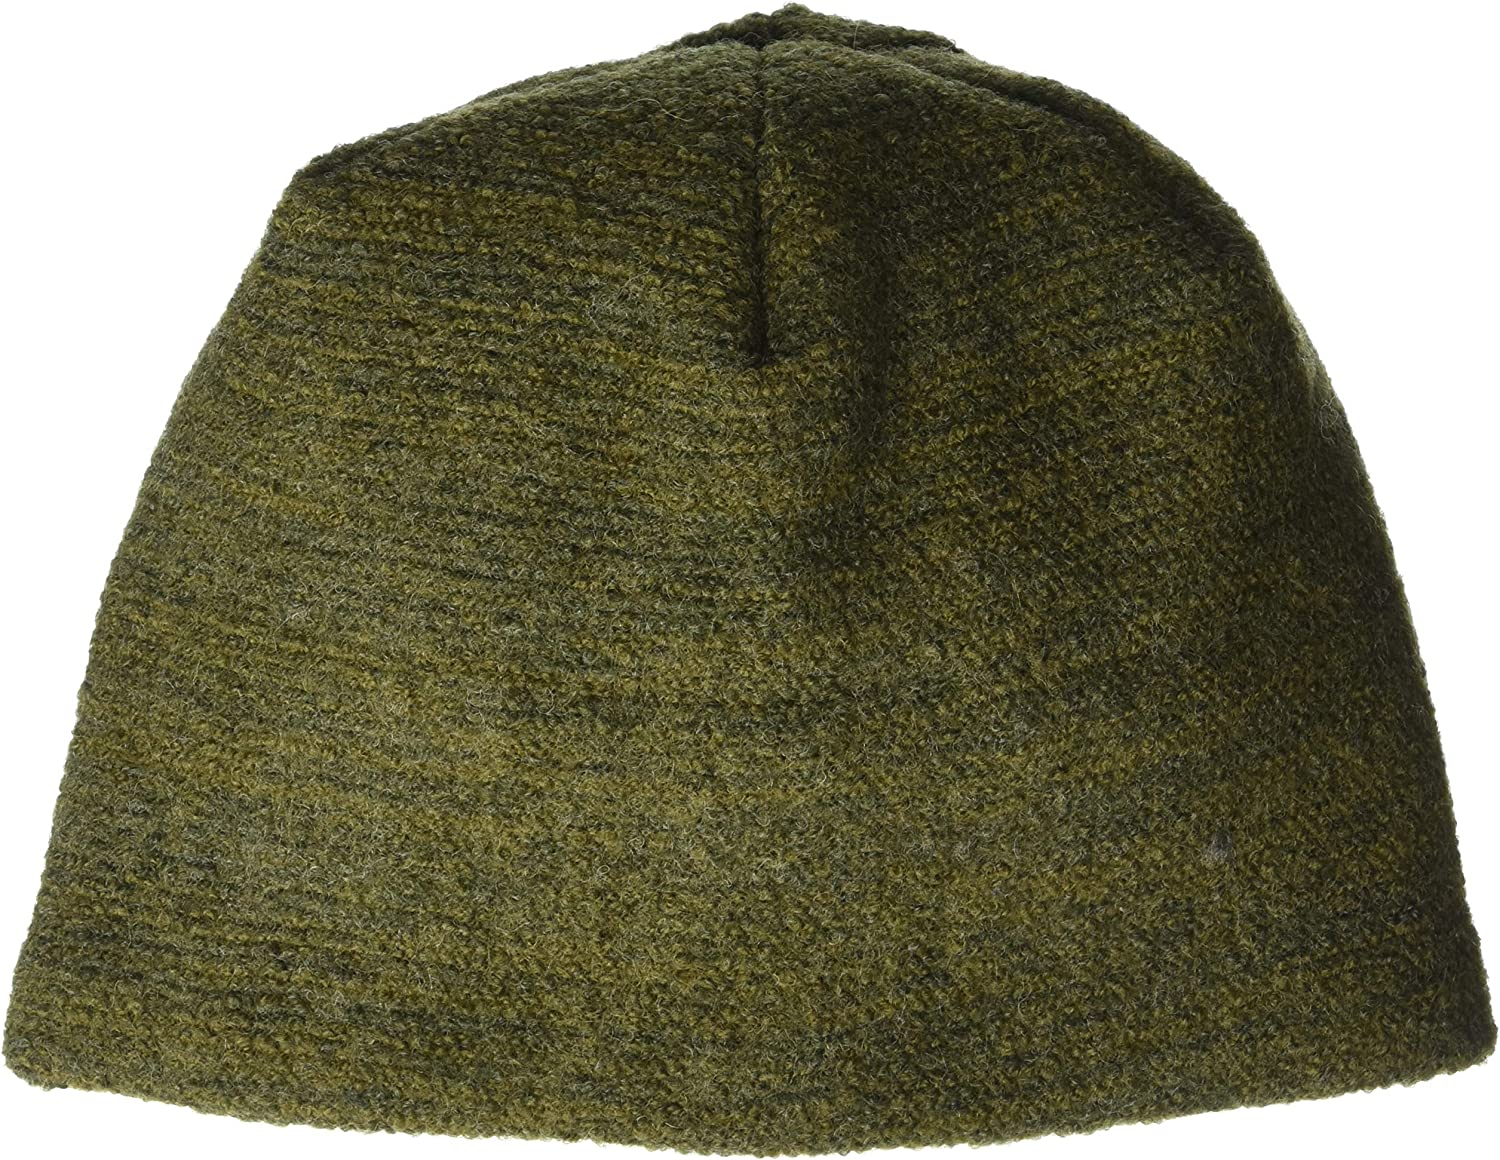 Pistil Men's Opening large release Max 78% OFF sale Otto One Olive Size